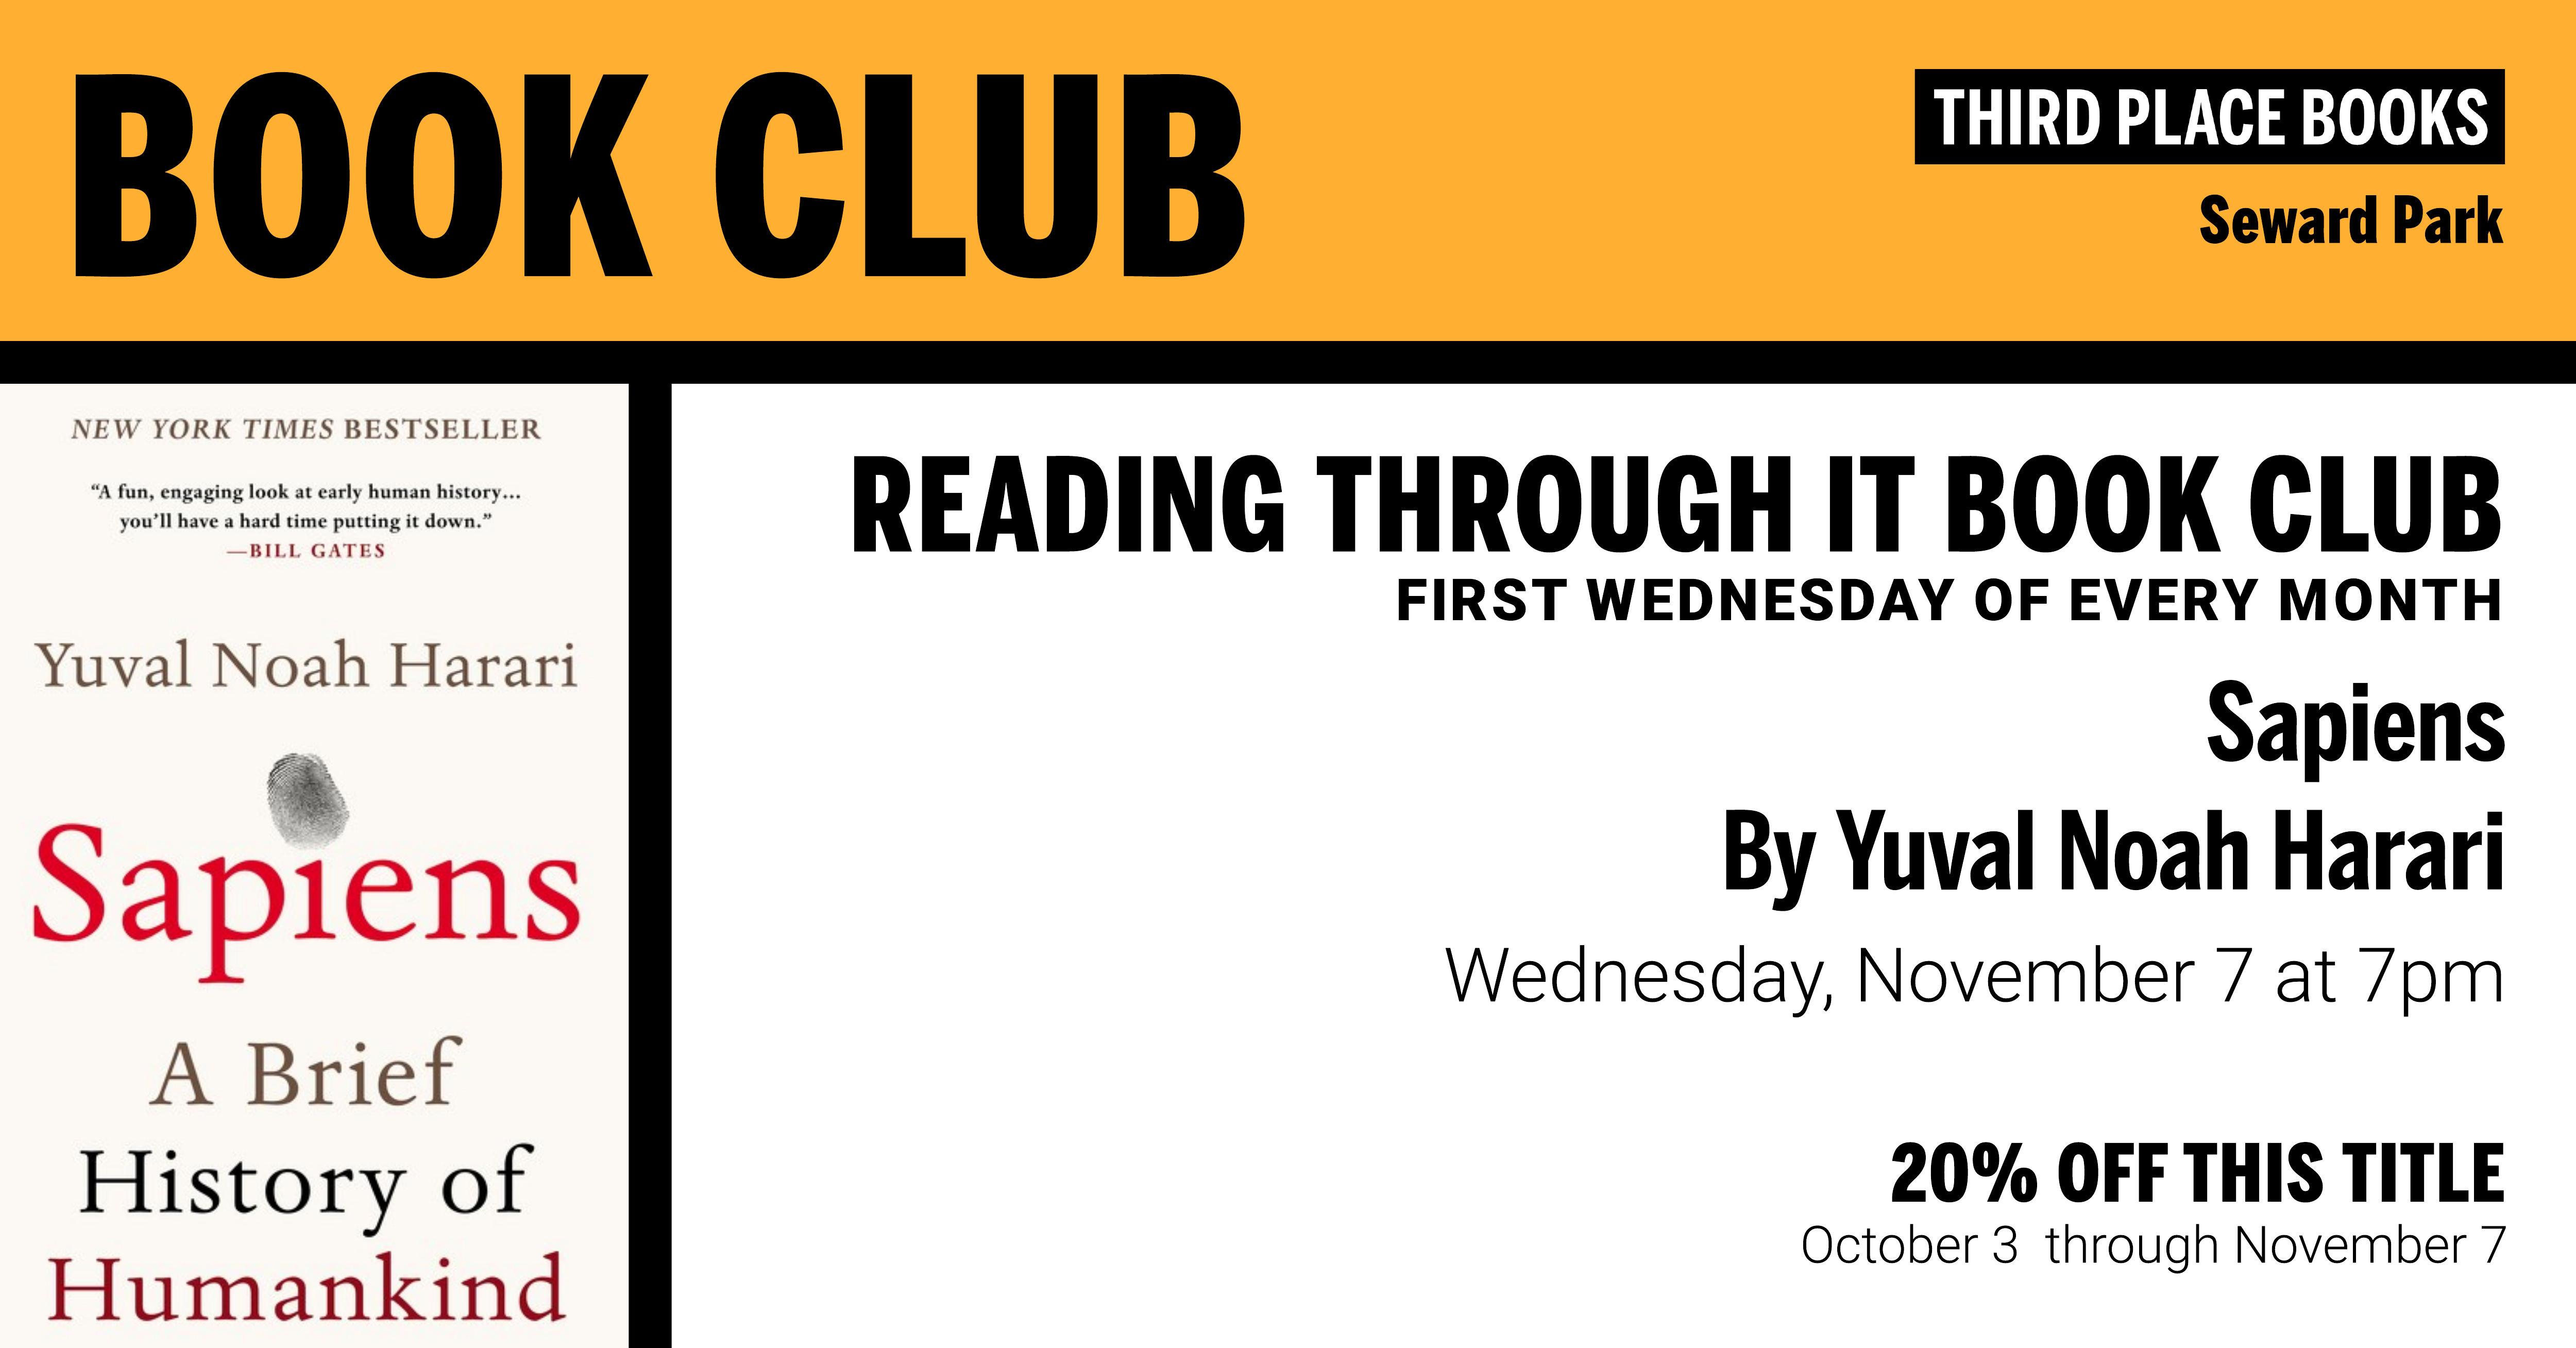 Reading Through It Book Club discussing Sapiens on Wednesday, November 7 at 7pm